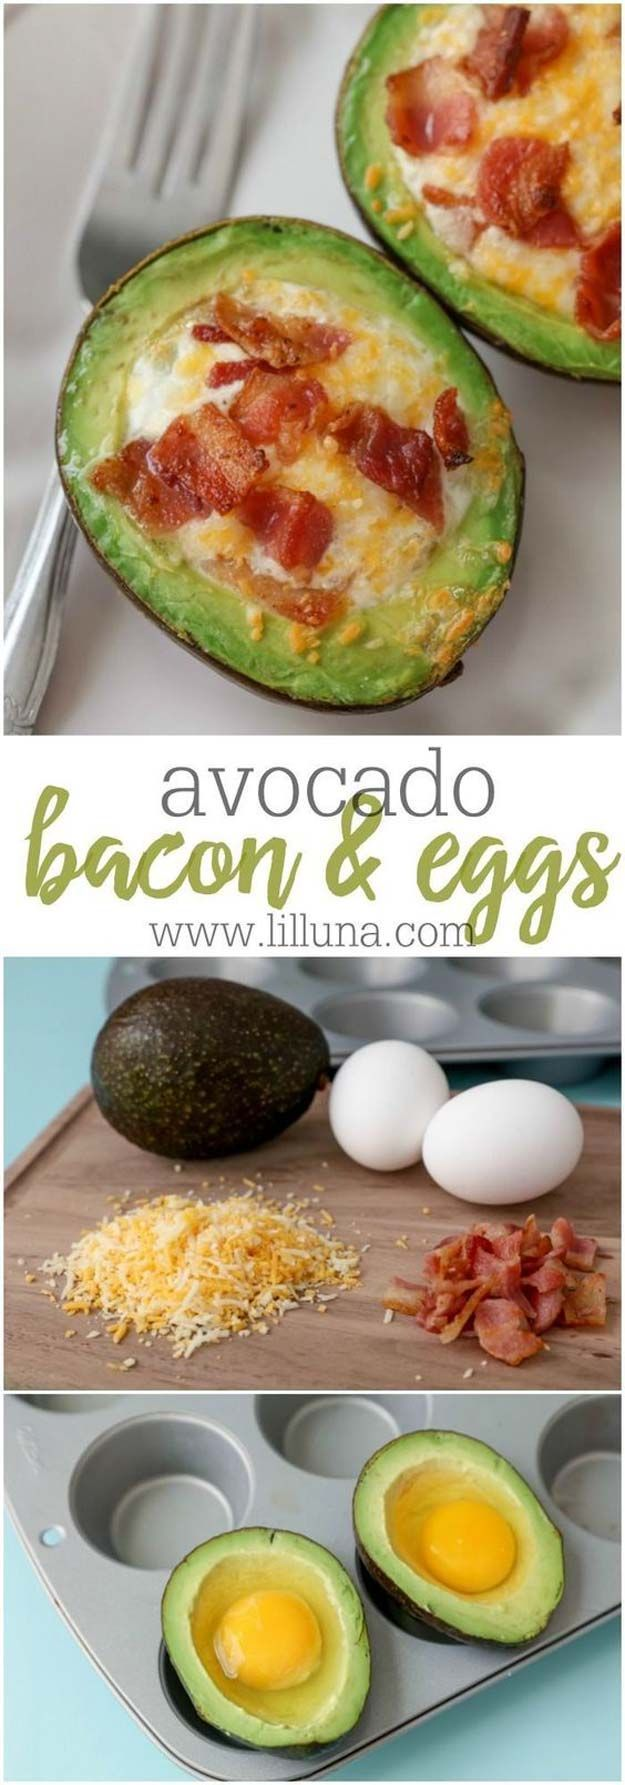 Healthy Avocado Recipes - Avocado Bacon and Eggs - Easy Clean Eating Recipes for Breakfast, Lunches, Dinner and even Desserts - Low Carb Vegetarian Snacks, Dip, Smothie Ideas and All Sorts of Diets - Get Your Fitness in Order with these awesome Paleo Detox Plans - thegoddess.com/healthy-avocado-recipes #dessertfoodrecipes